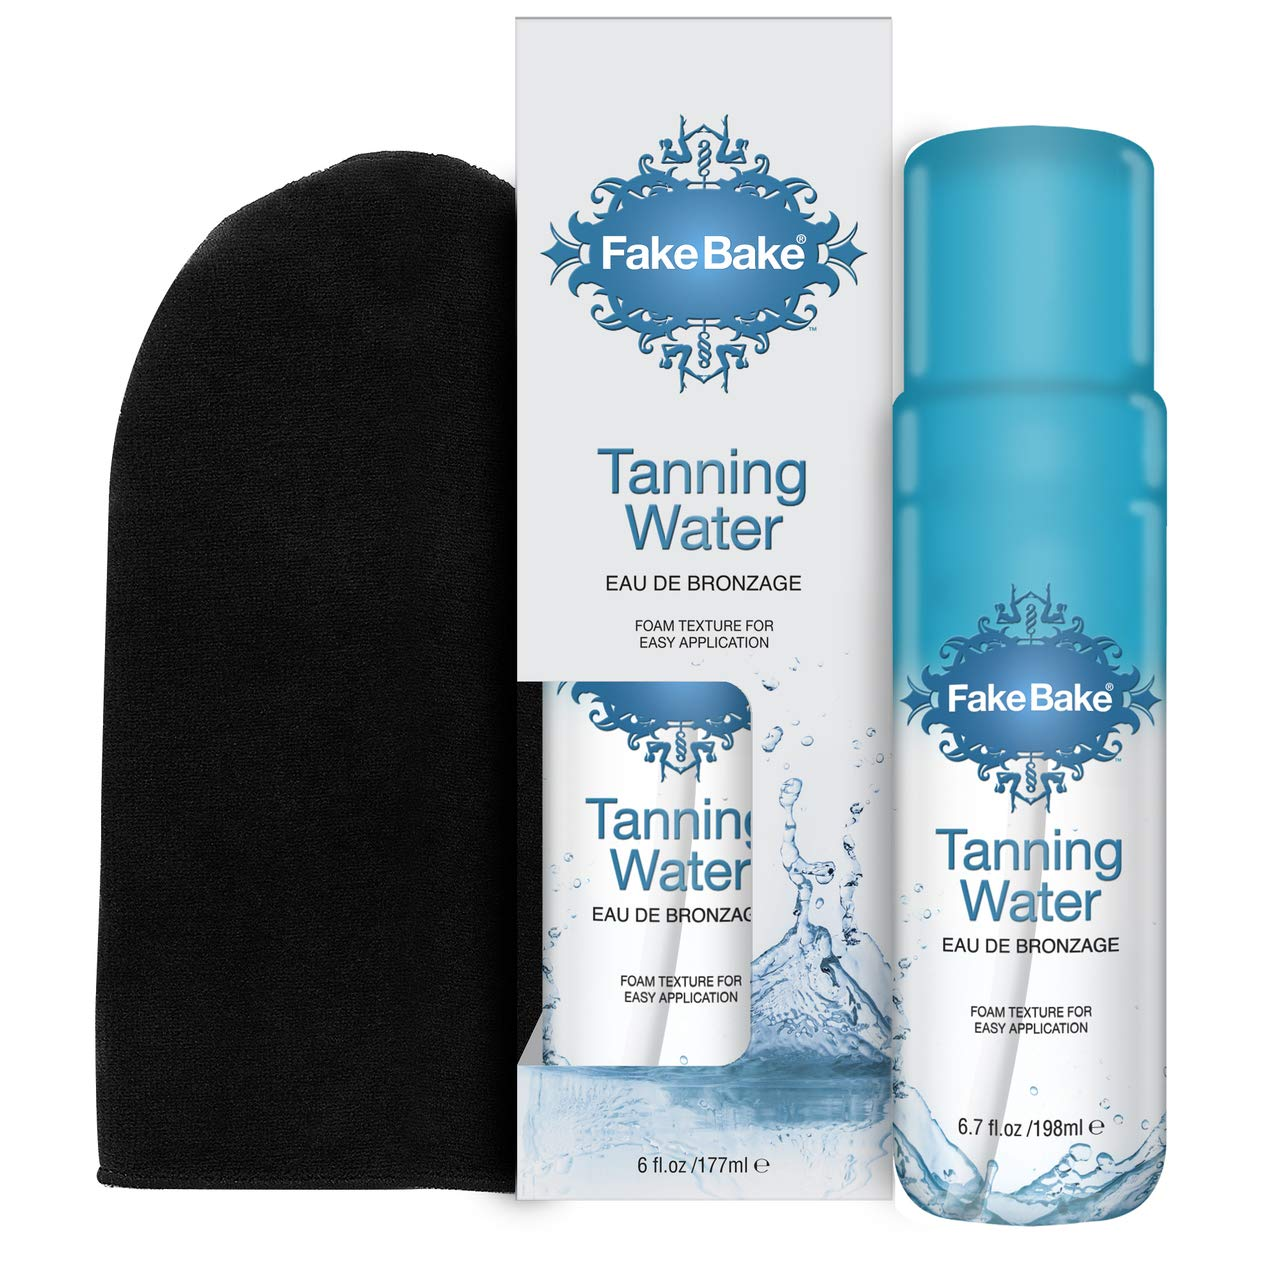 Fake Bake Tanning Water   Instant Hydration with Passion Flower   Natural Looking Sunkissed Golden Bronze Glow   Professional Mitt Included For Easy Application   6.7 oz by Fake Bake